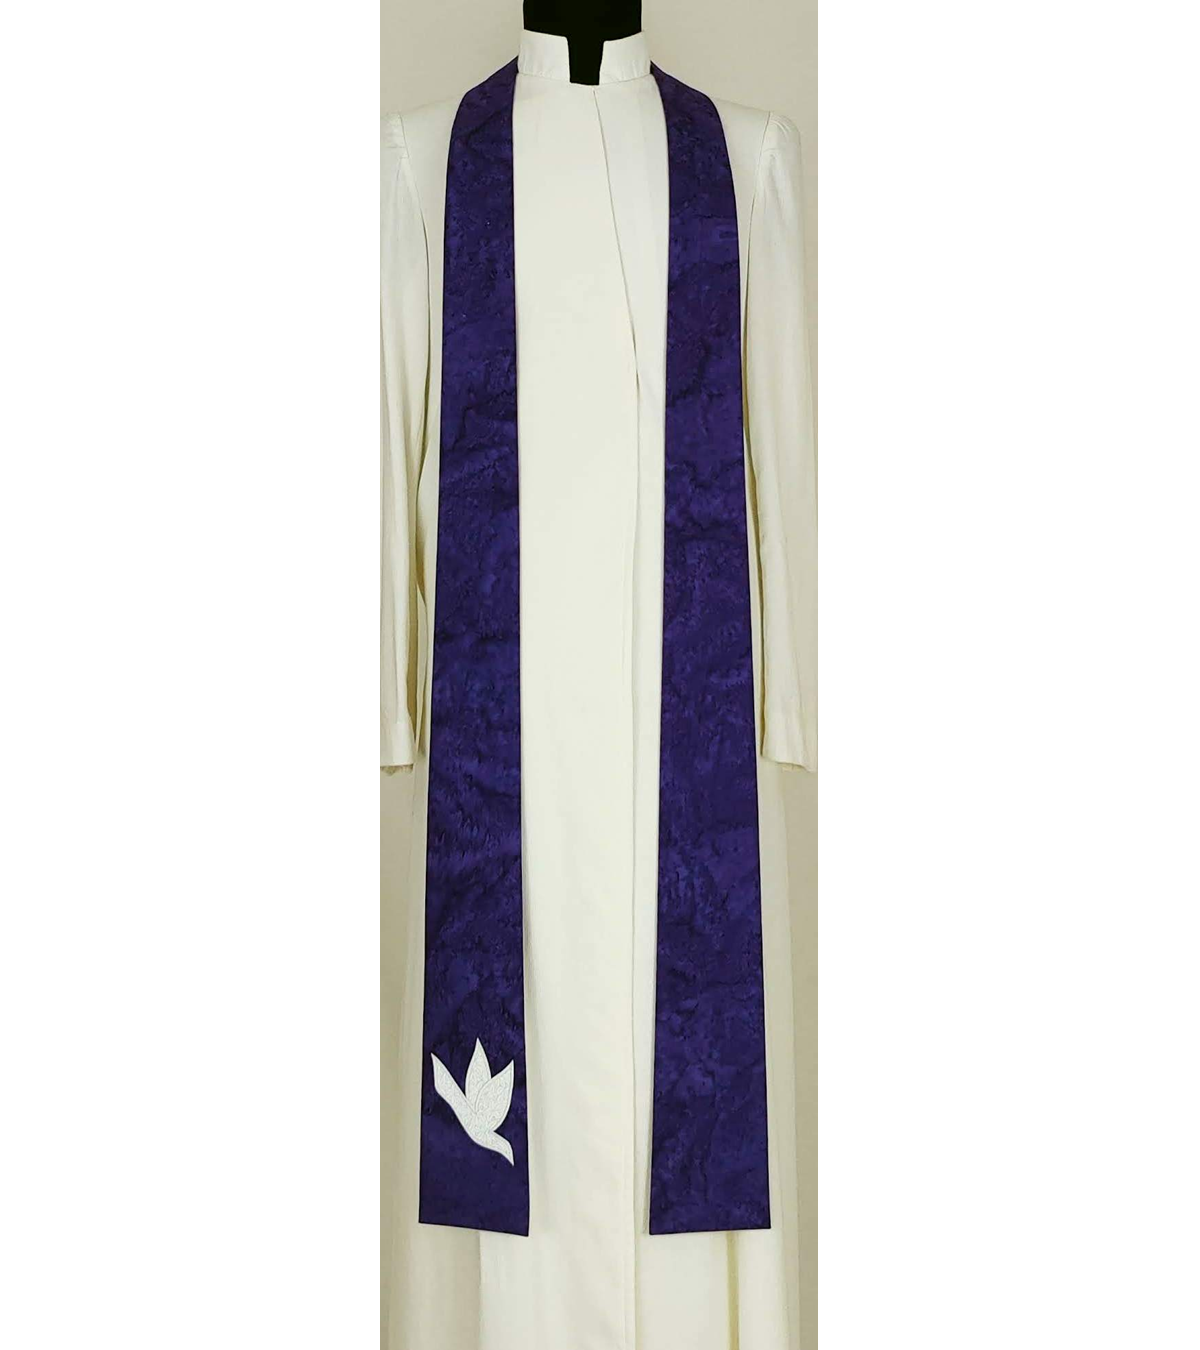 And on Earth, Peace: NARROW Purple Stole with Dove Design